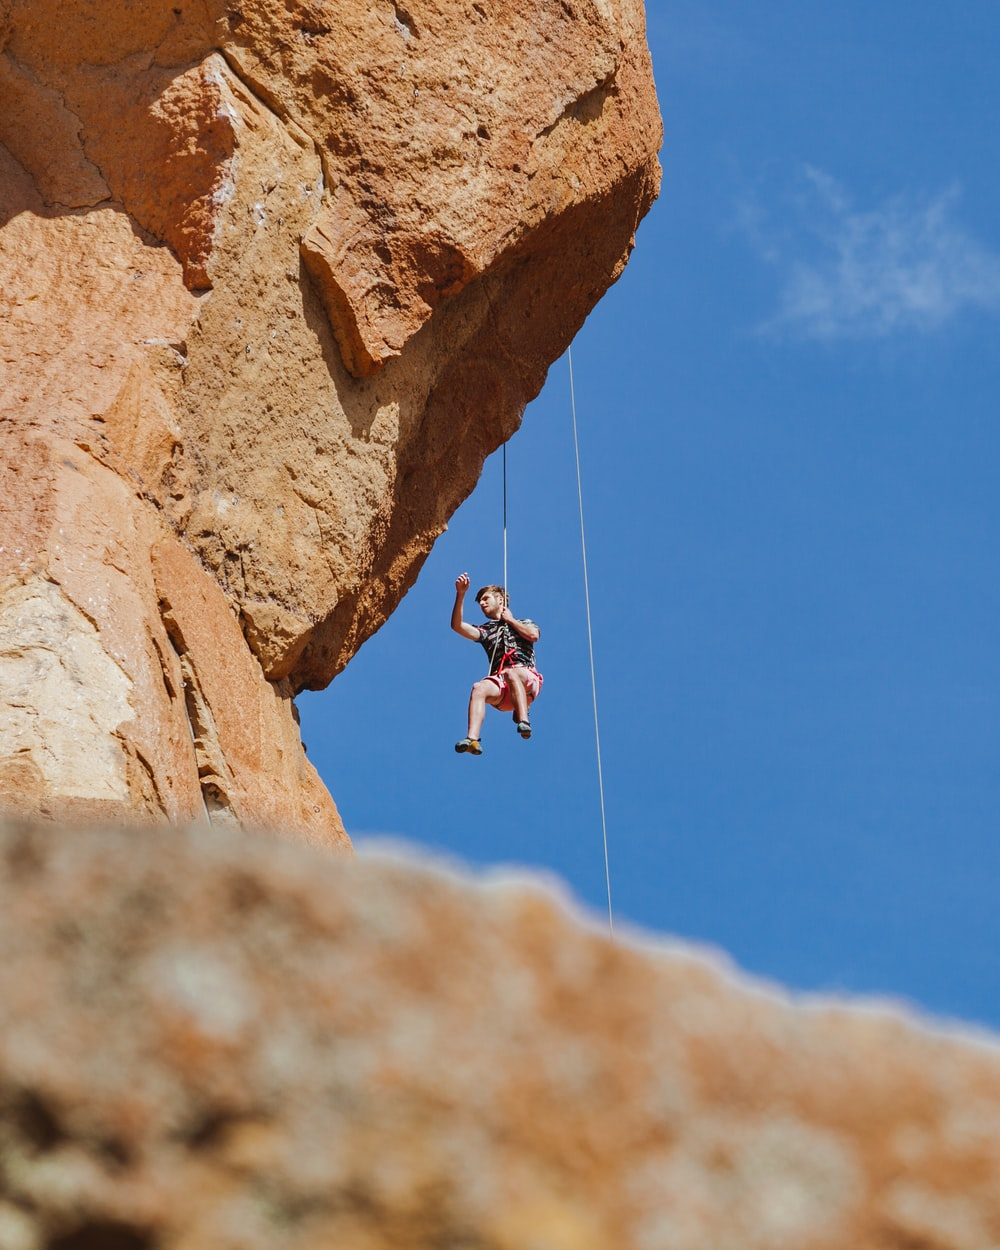 man in black shirt and black shorts jumping on brown rock during daytime